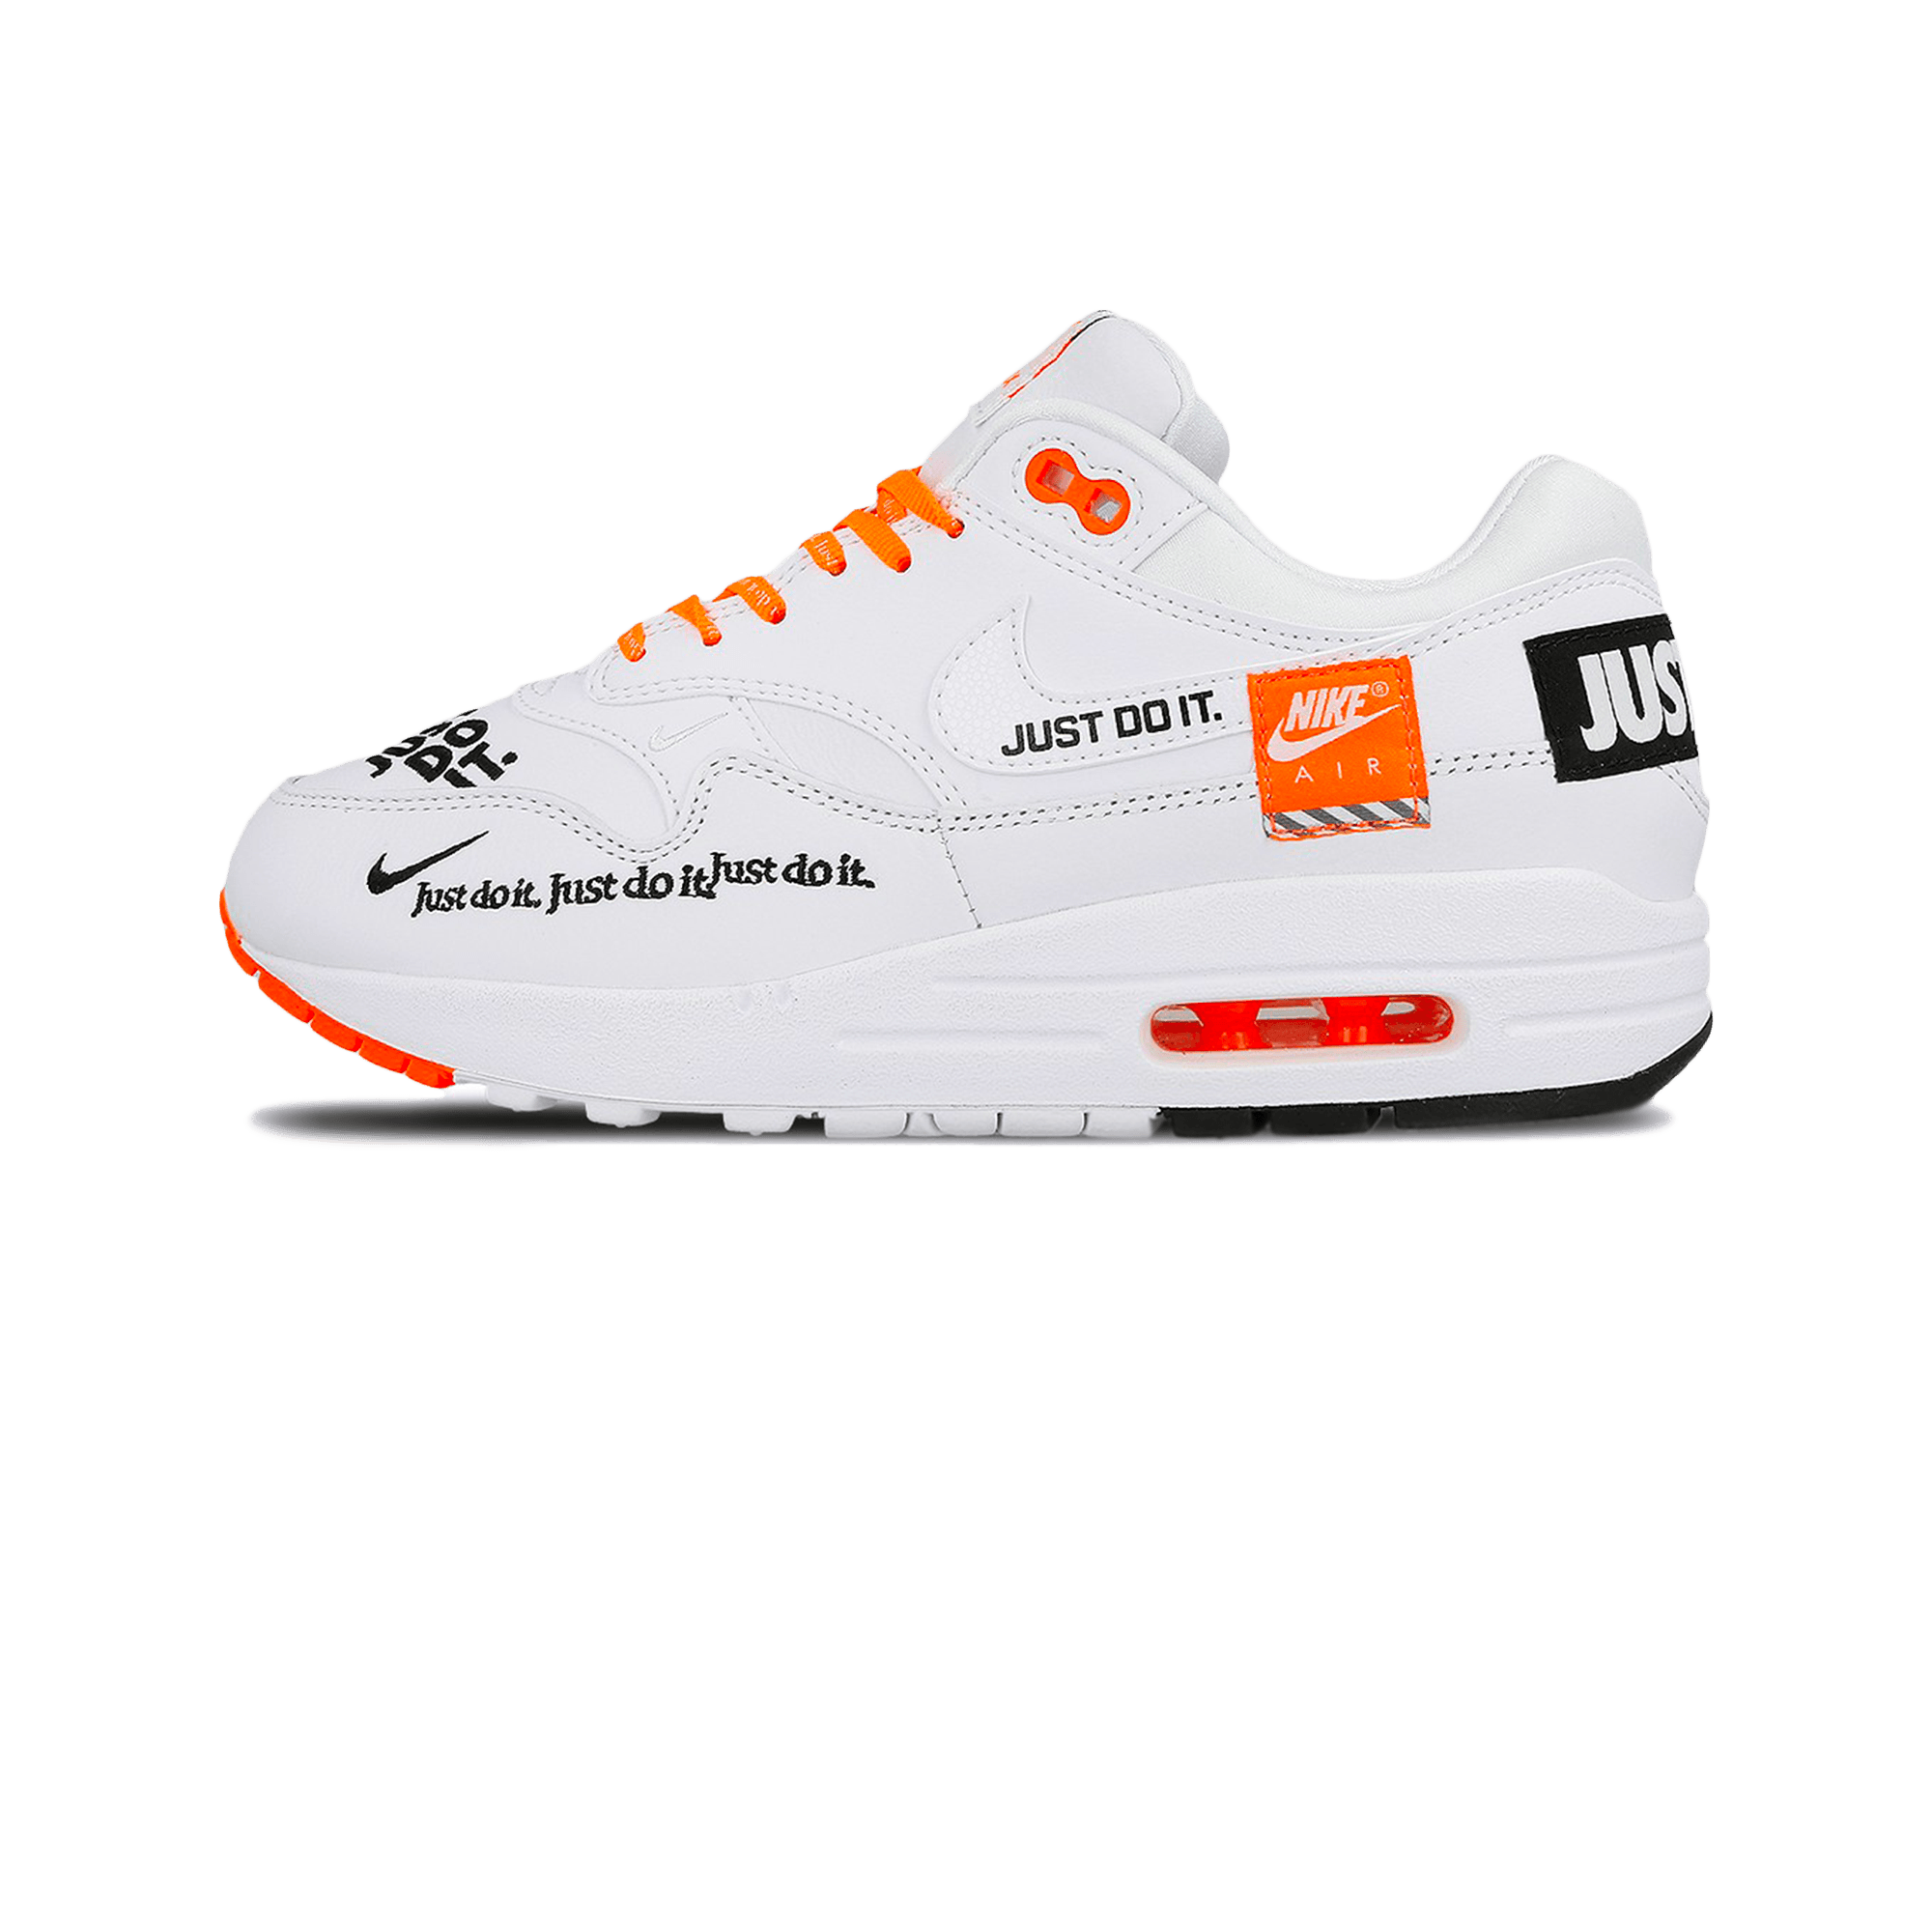 huge discount huge selection of cheap sale Nike Air Max 1 Lux